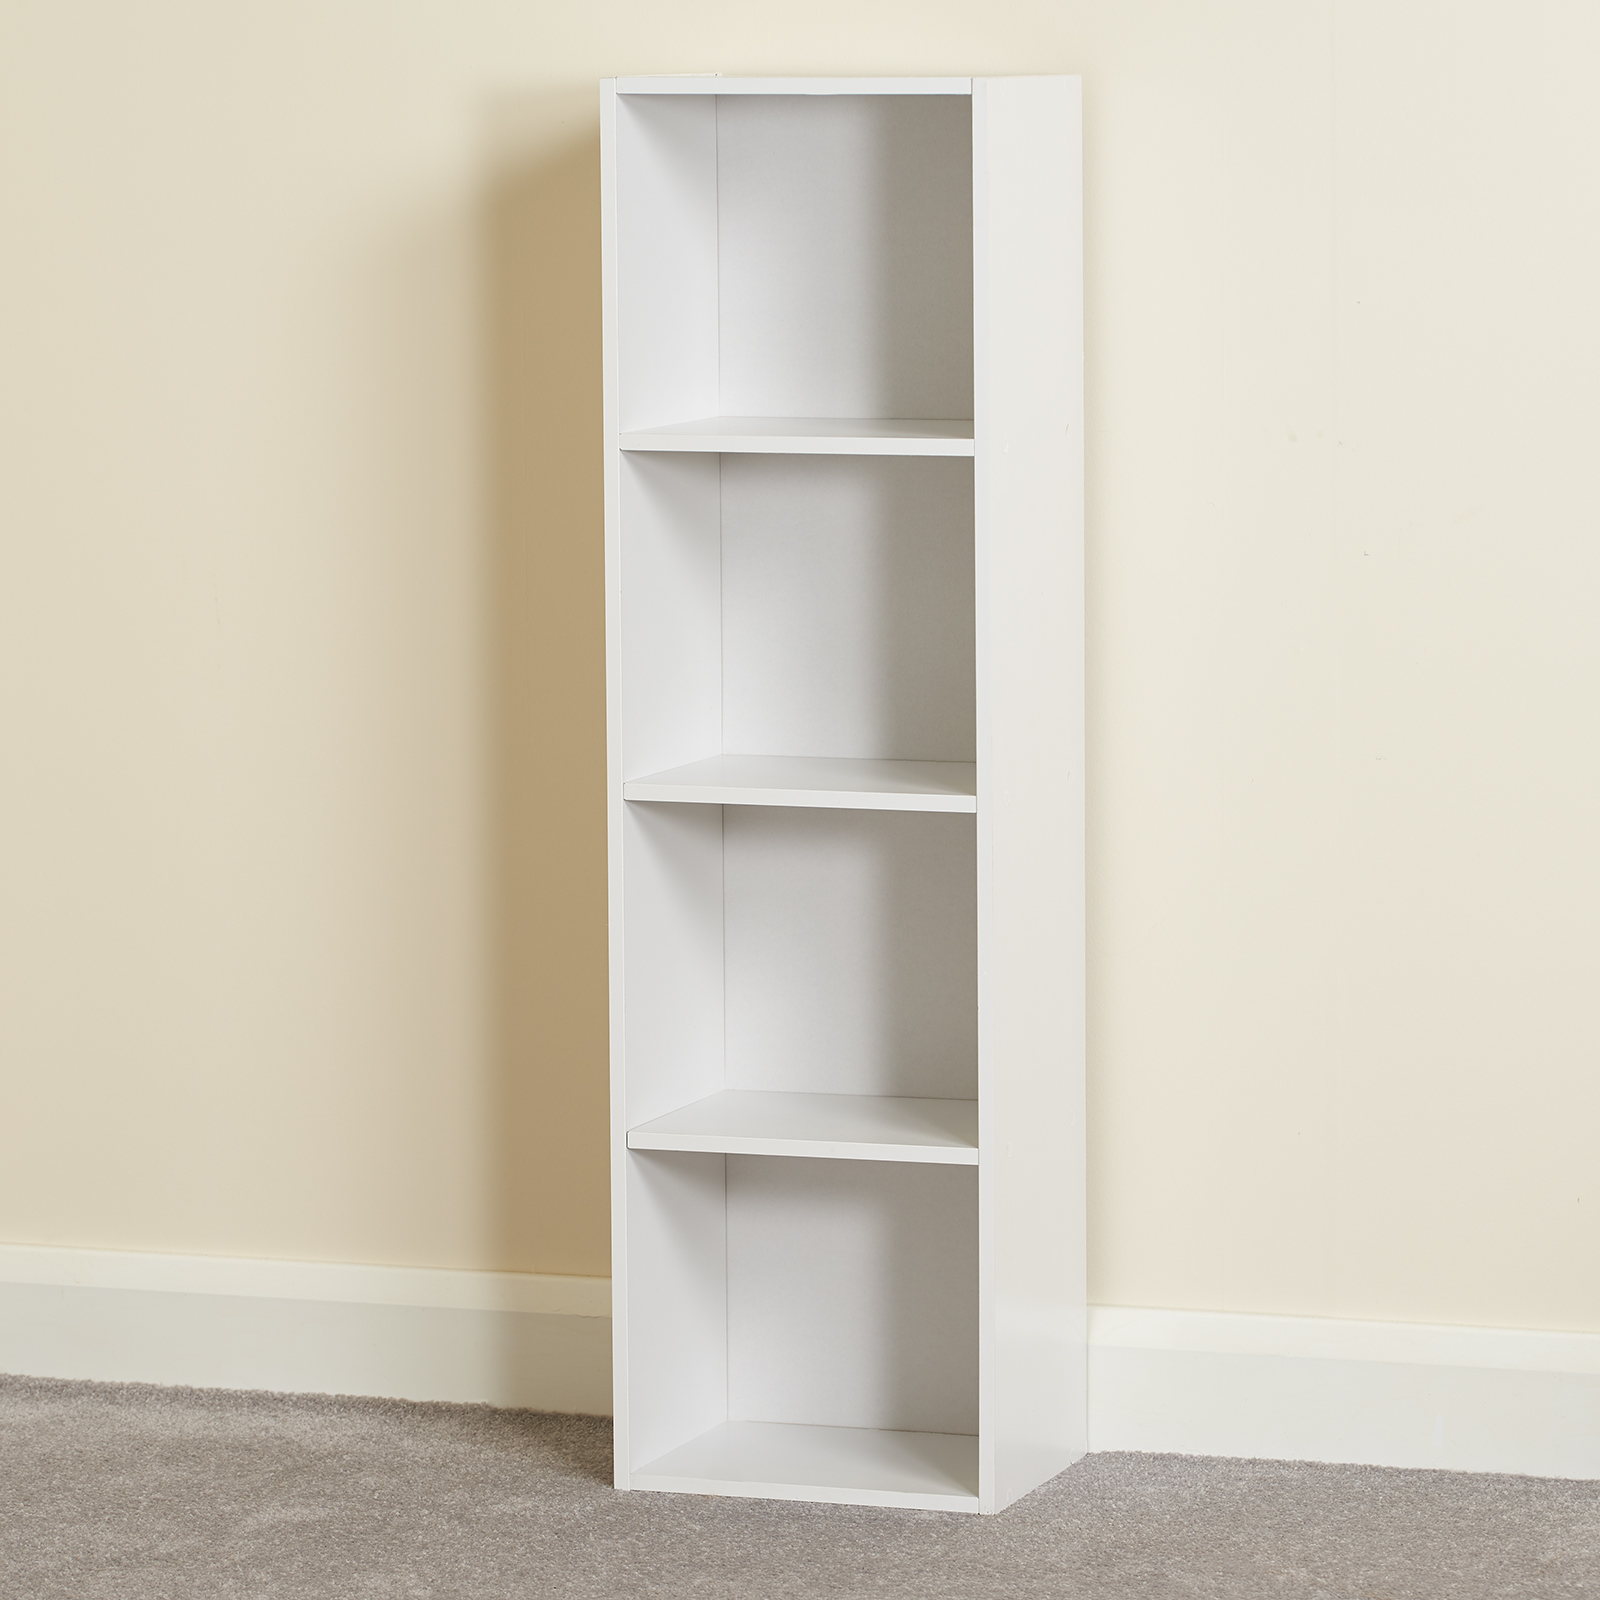 Hartleys-4-Tier-White-Bookcase-Wooden-Display-Shelving-Unit-amp-Fabric-Storage-Box thumbnail 37